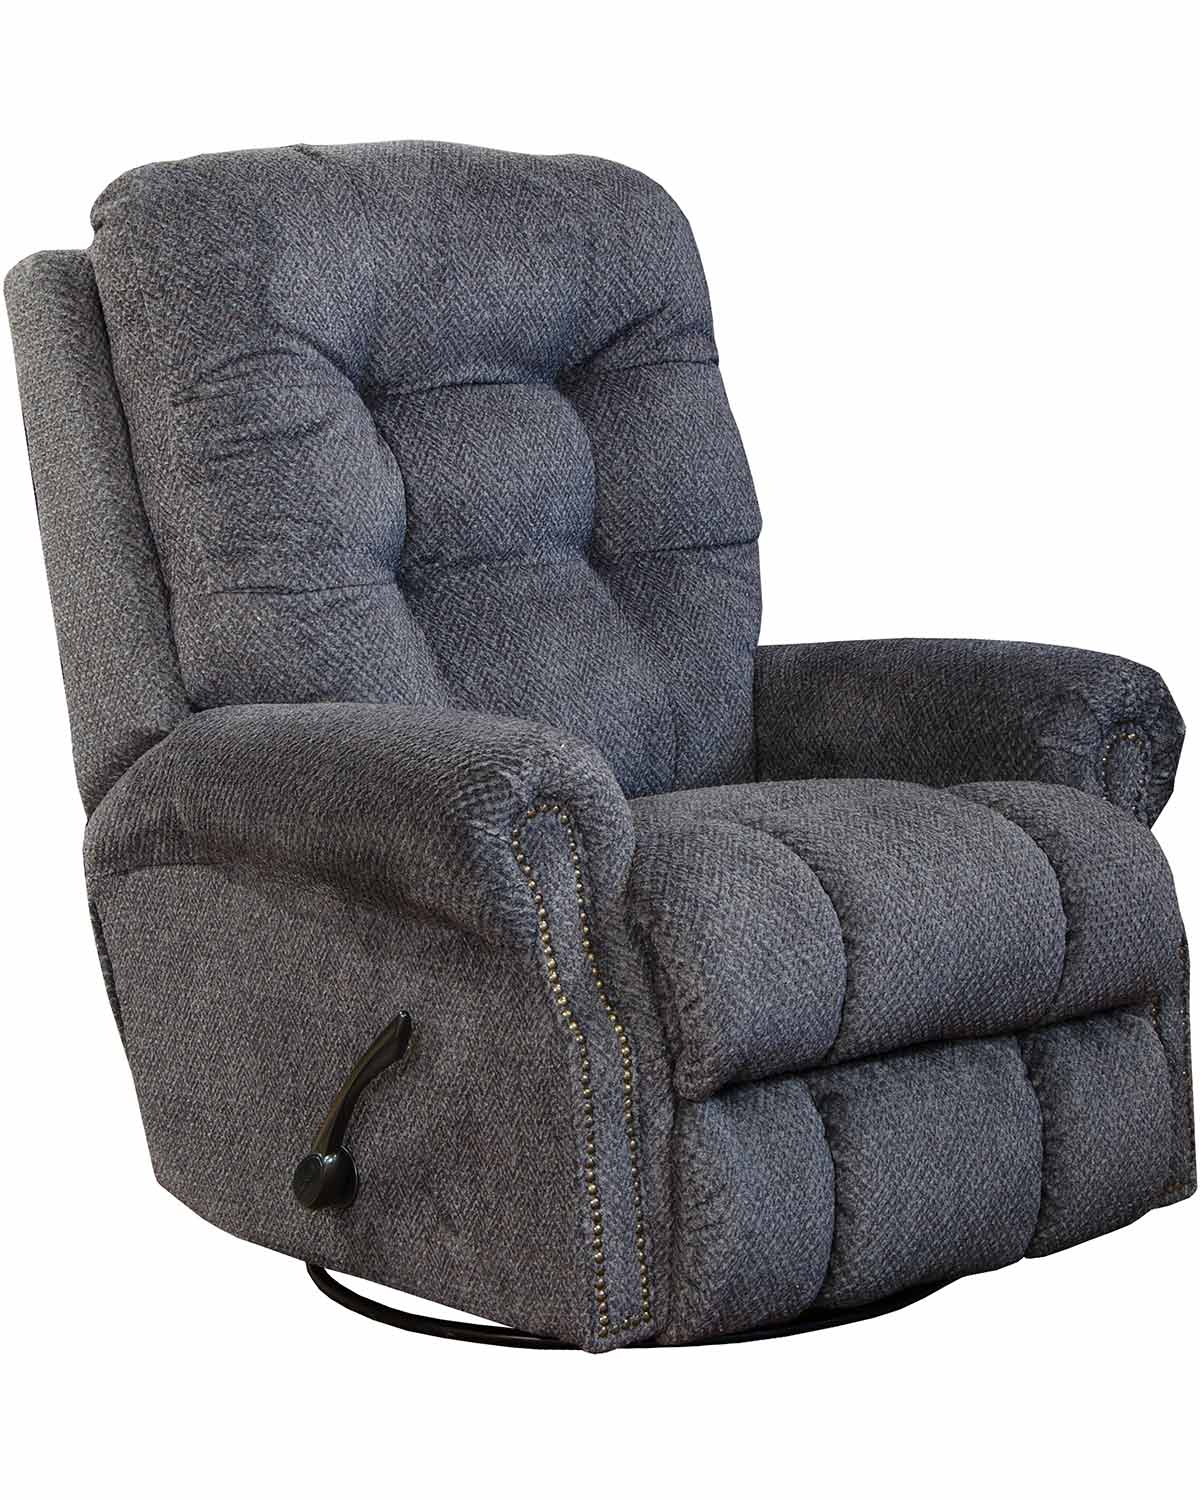 CatNapper Norwood Recliner Chair - Pewter